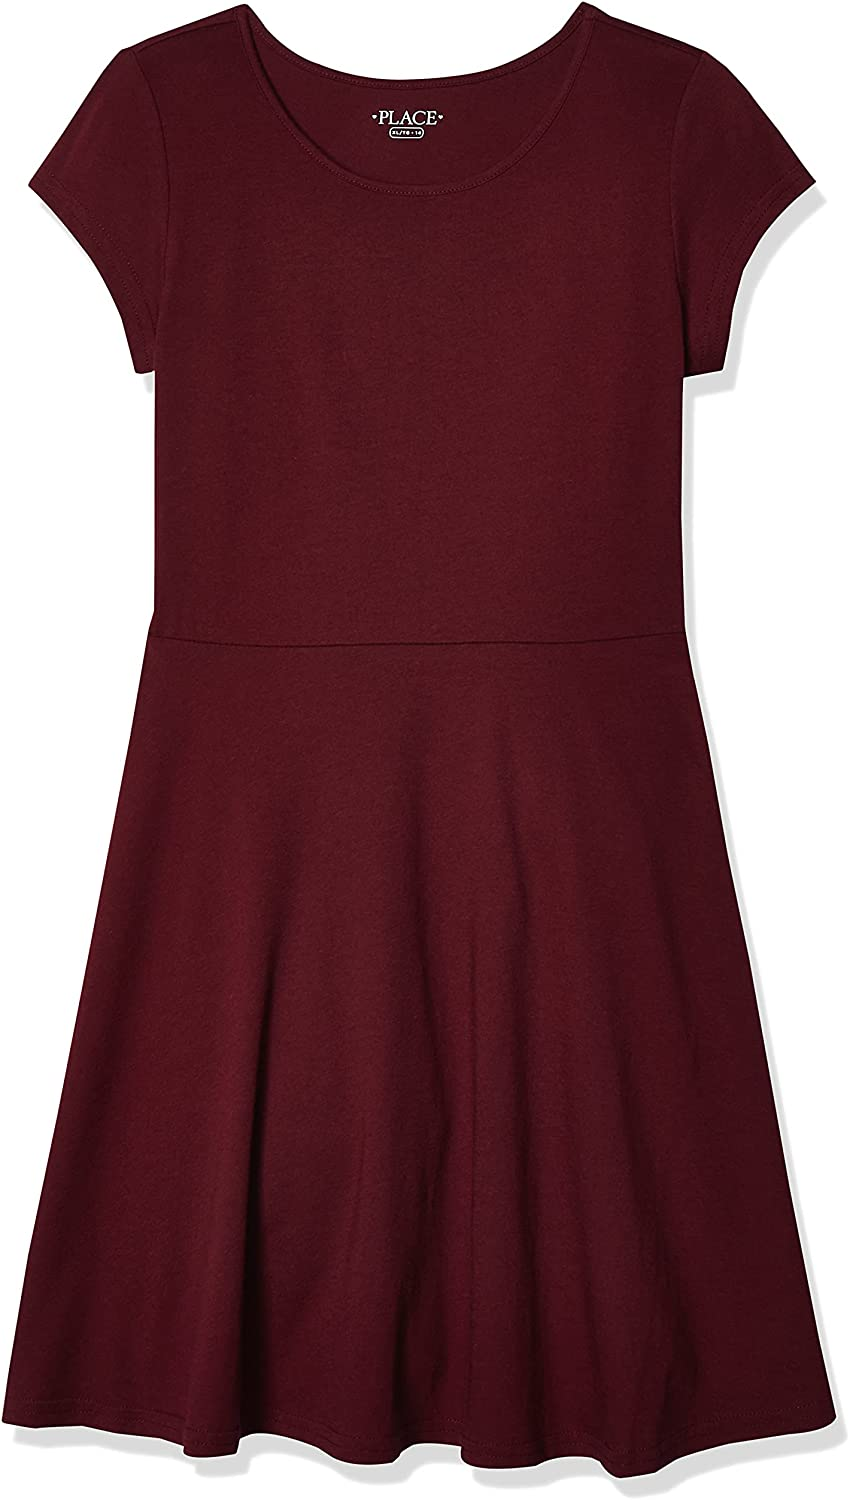 The Children's Place Girls' Big Short Sleeve Solid Knit Pleat Dress